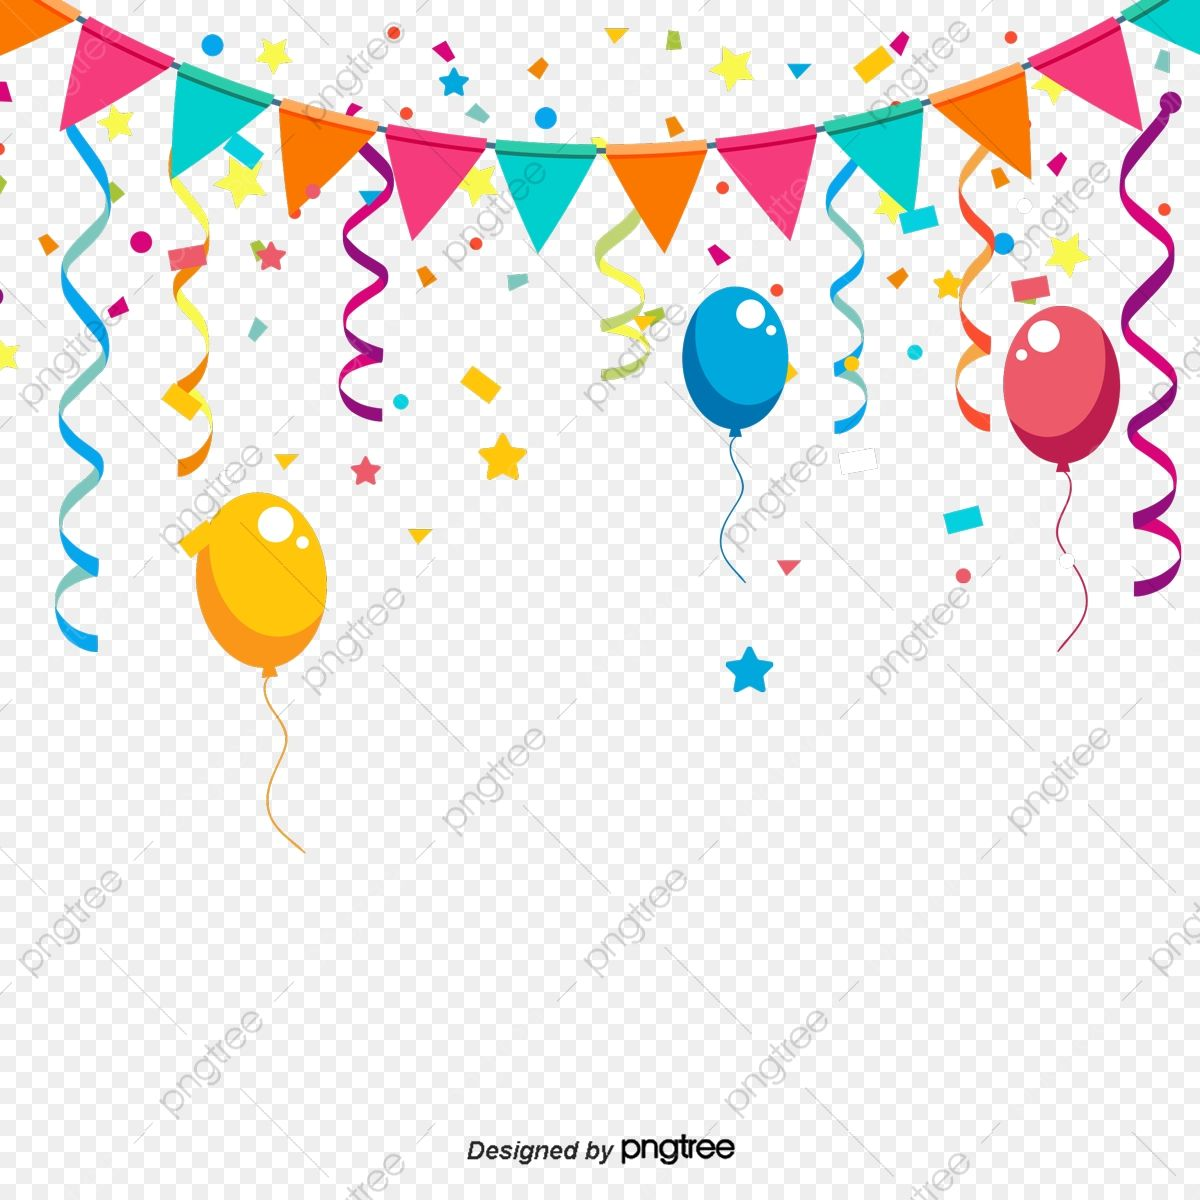 Colorful Birthday Party Decorations Party Triangular Hanging Flag Cartoon Png Transparent Clipart Image And Psd File For Free Download Colorful Birthday Party Decorations Colorful Birthday Party Colorful Birthday